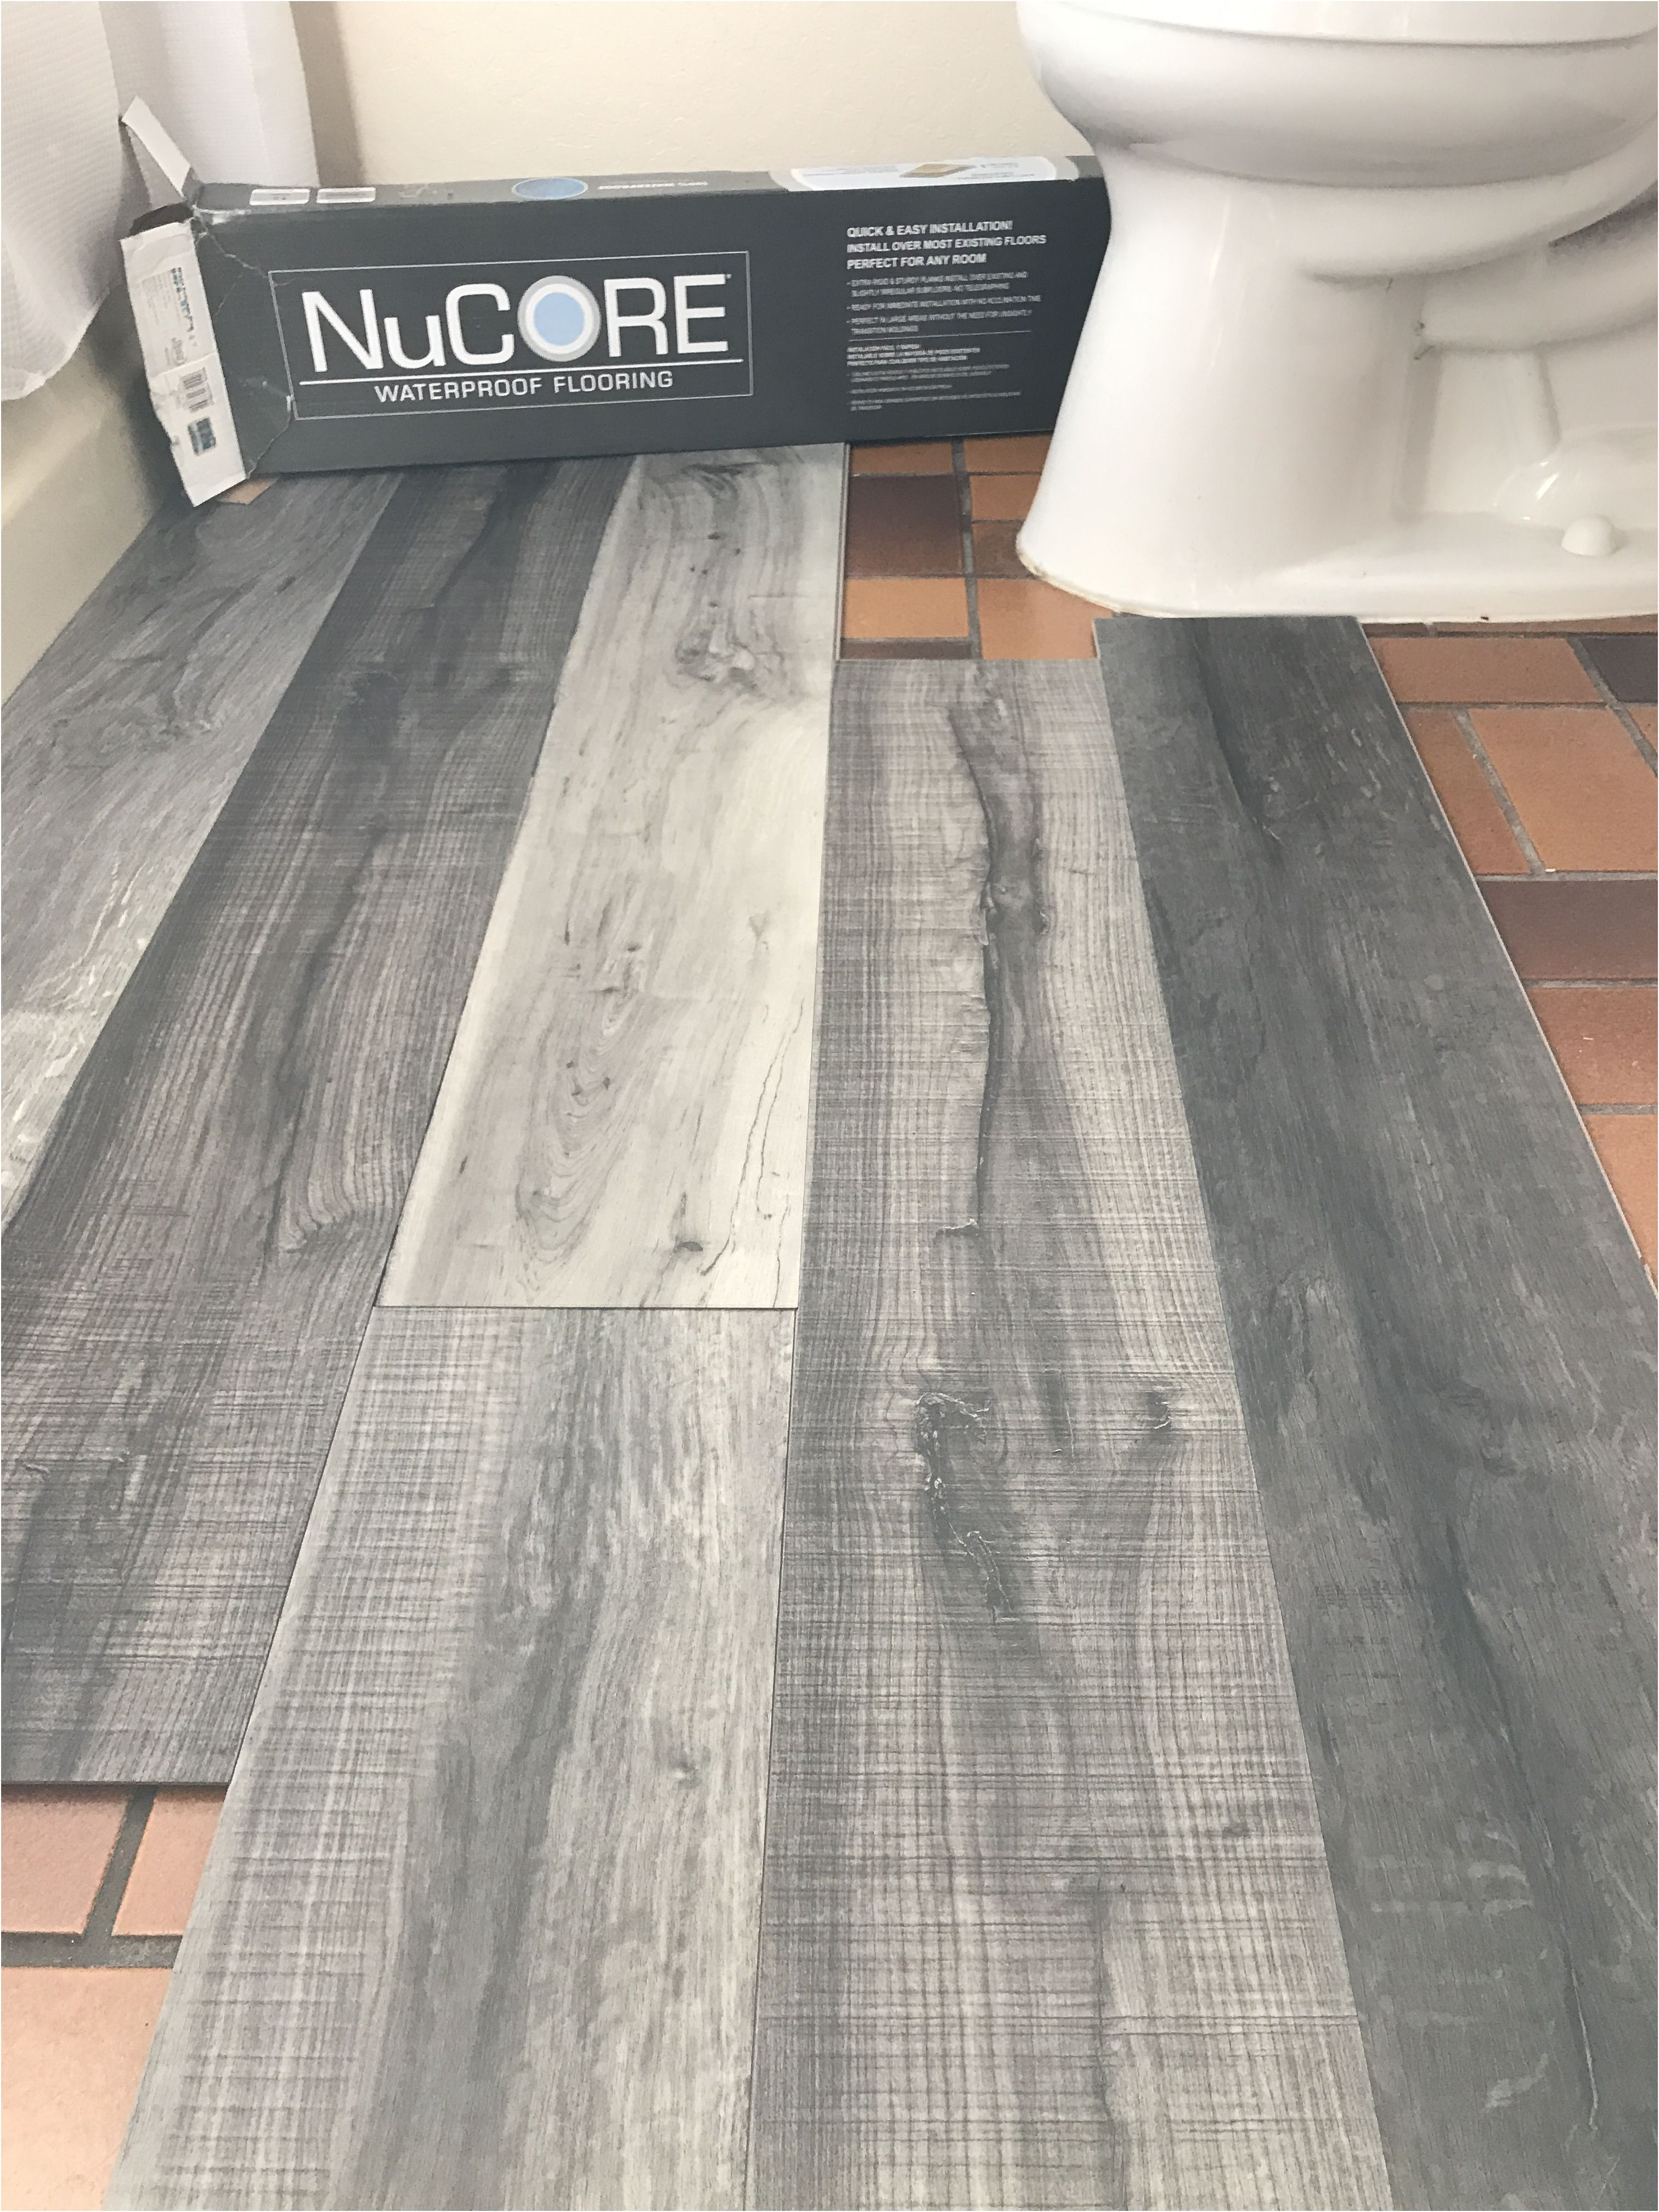 35 Amazing Gray Vinyl Plank Flooring Ideas Decornish Dot Com Vinyl Plank Flooring Bathroom Remodel Cost Bathrooms Remodel